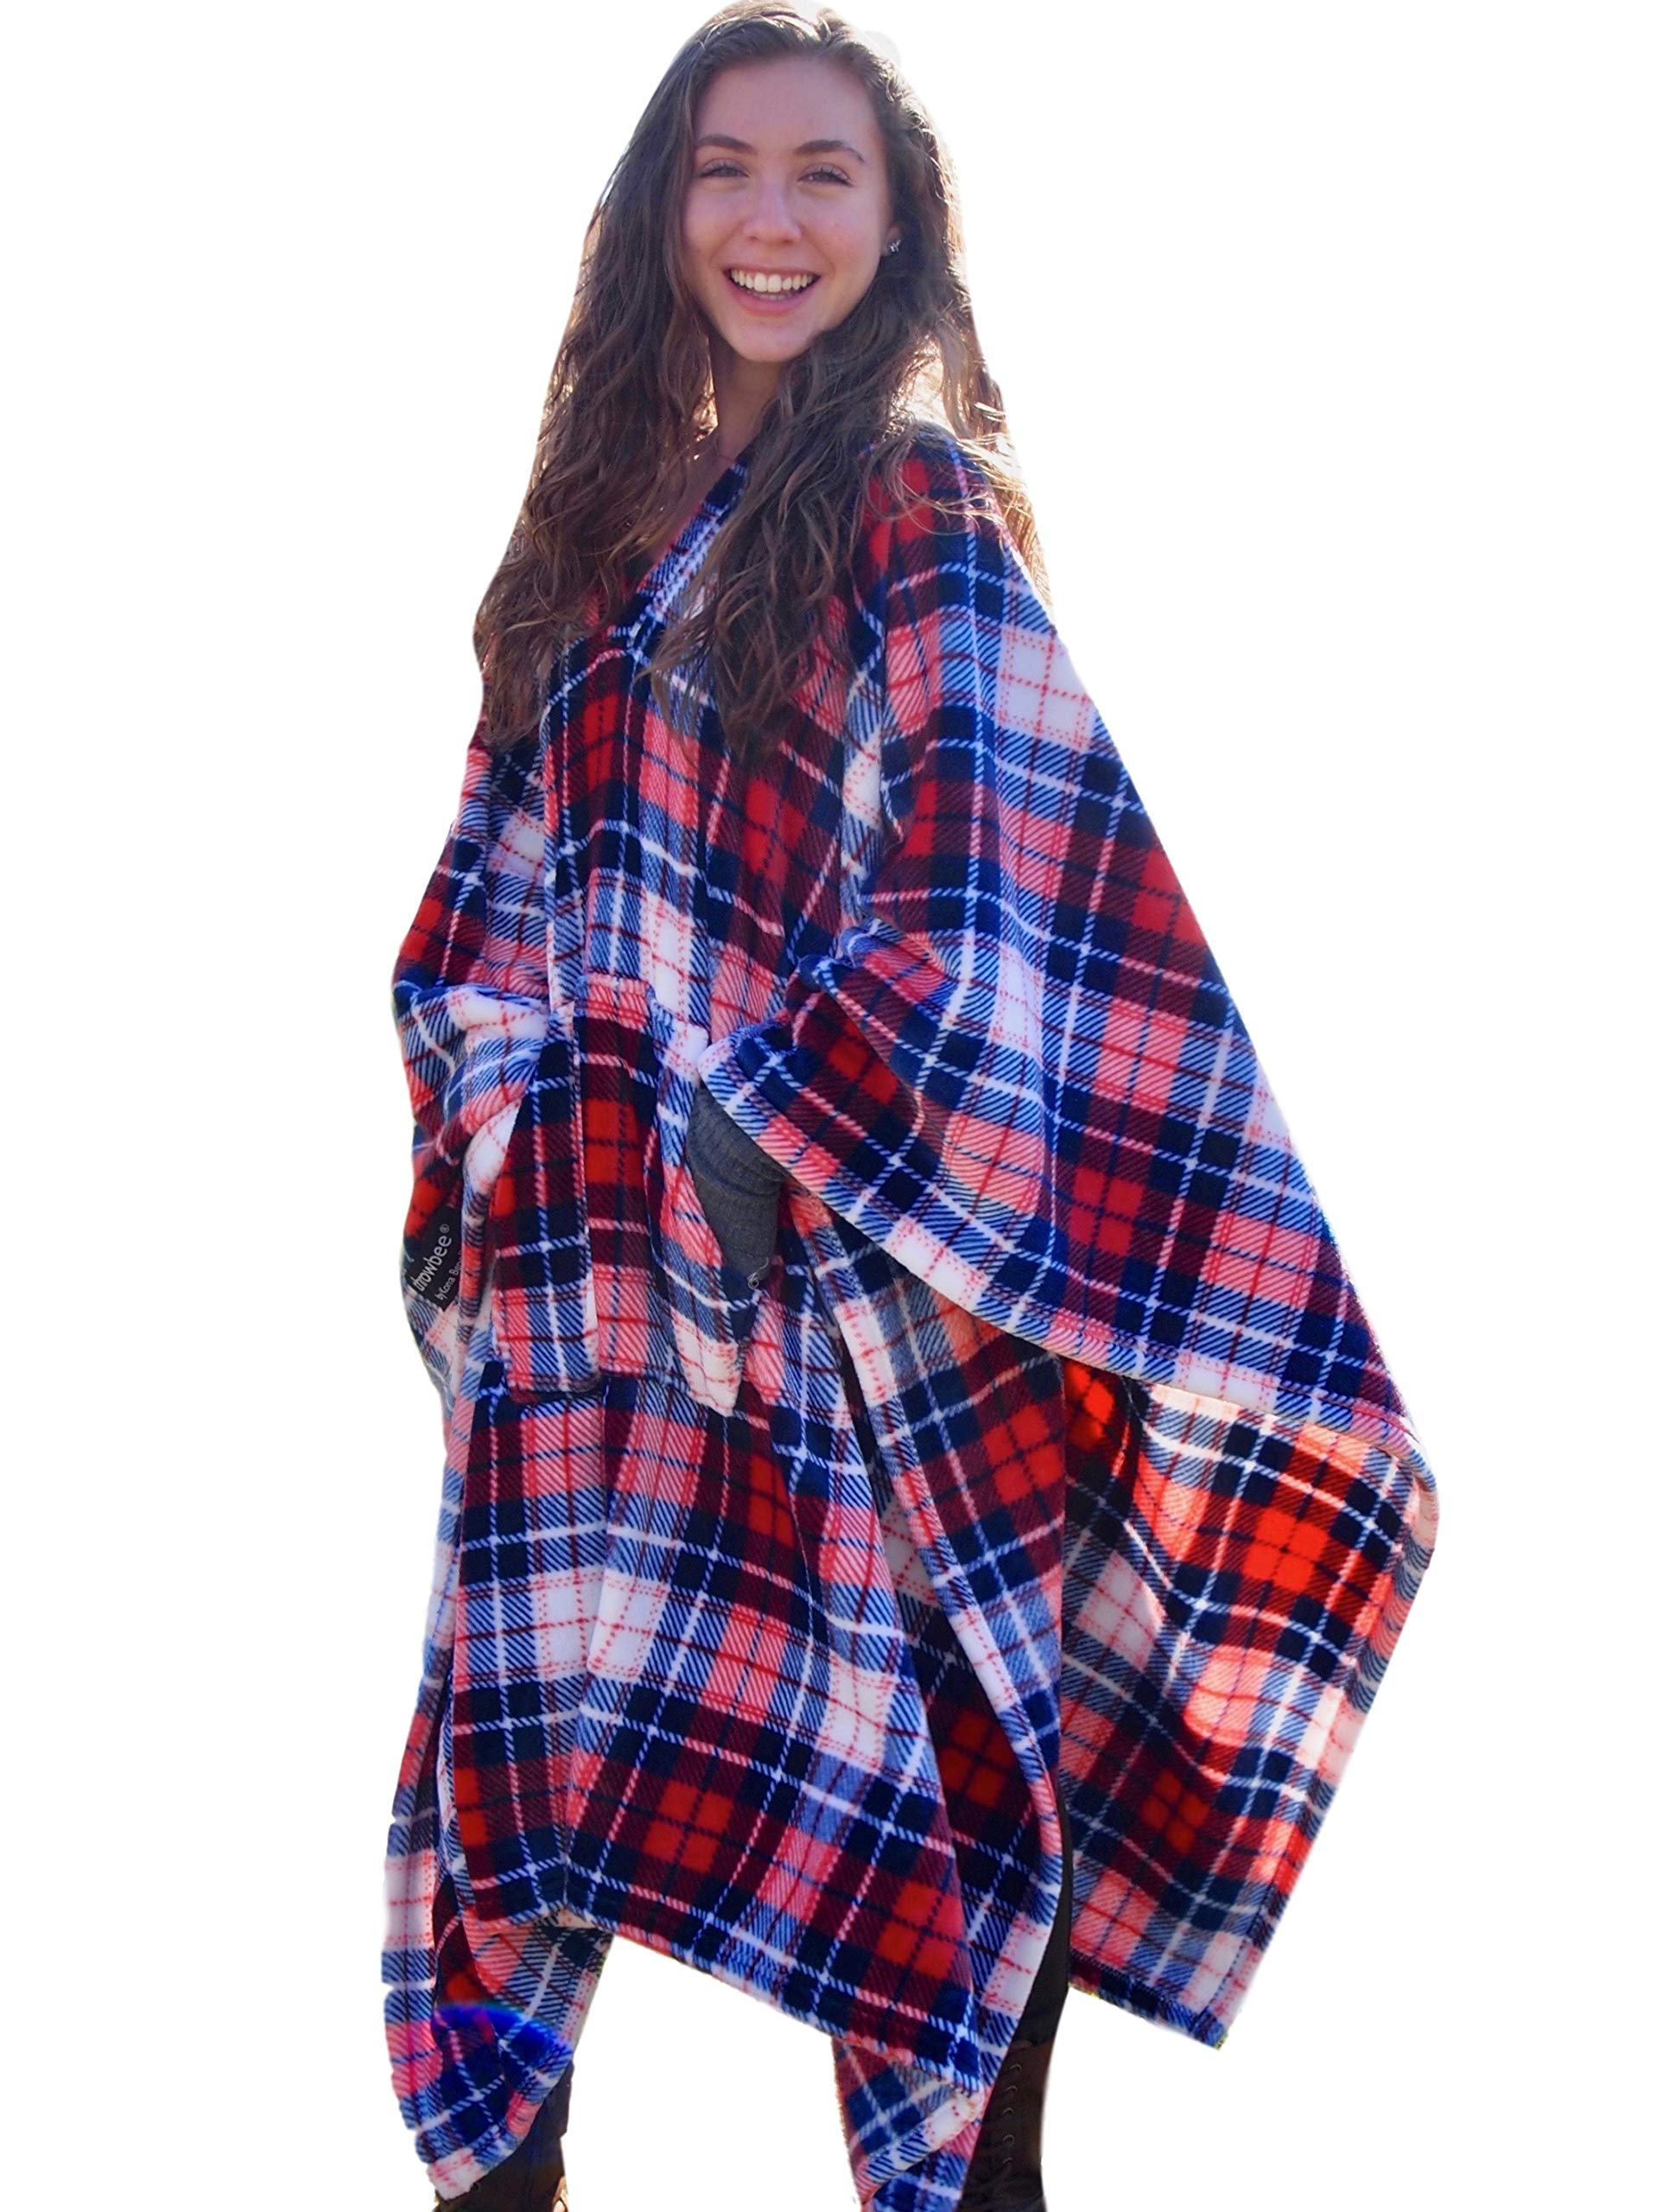 Original THROWBEE Blanket-Poncho UPSTATE PLAID red blue (Yay! NO SLEEVES) Best Wearable Blanket on the planet SOFT throw Indoors or Outdoors - adults men women kids by throwbee